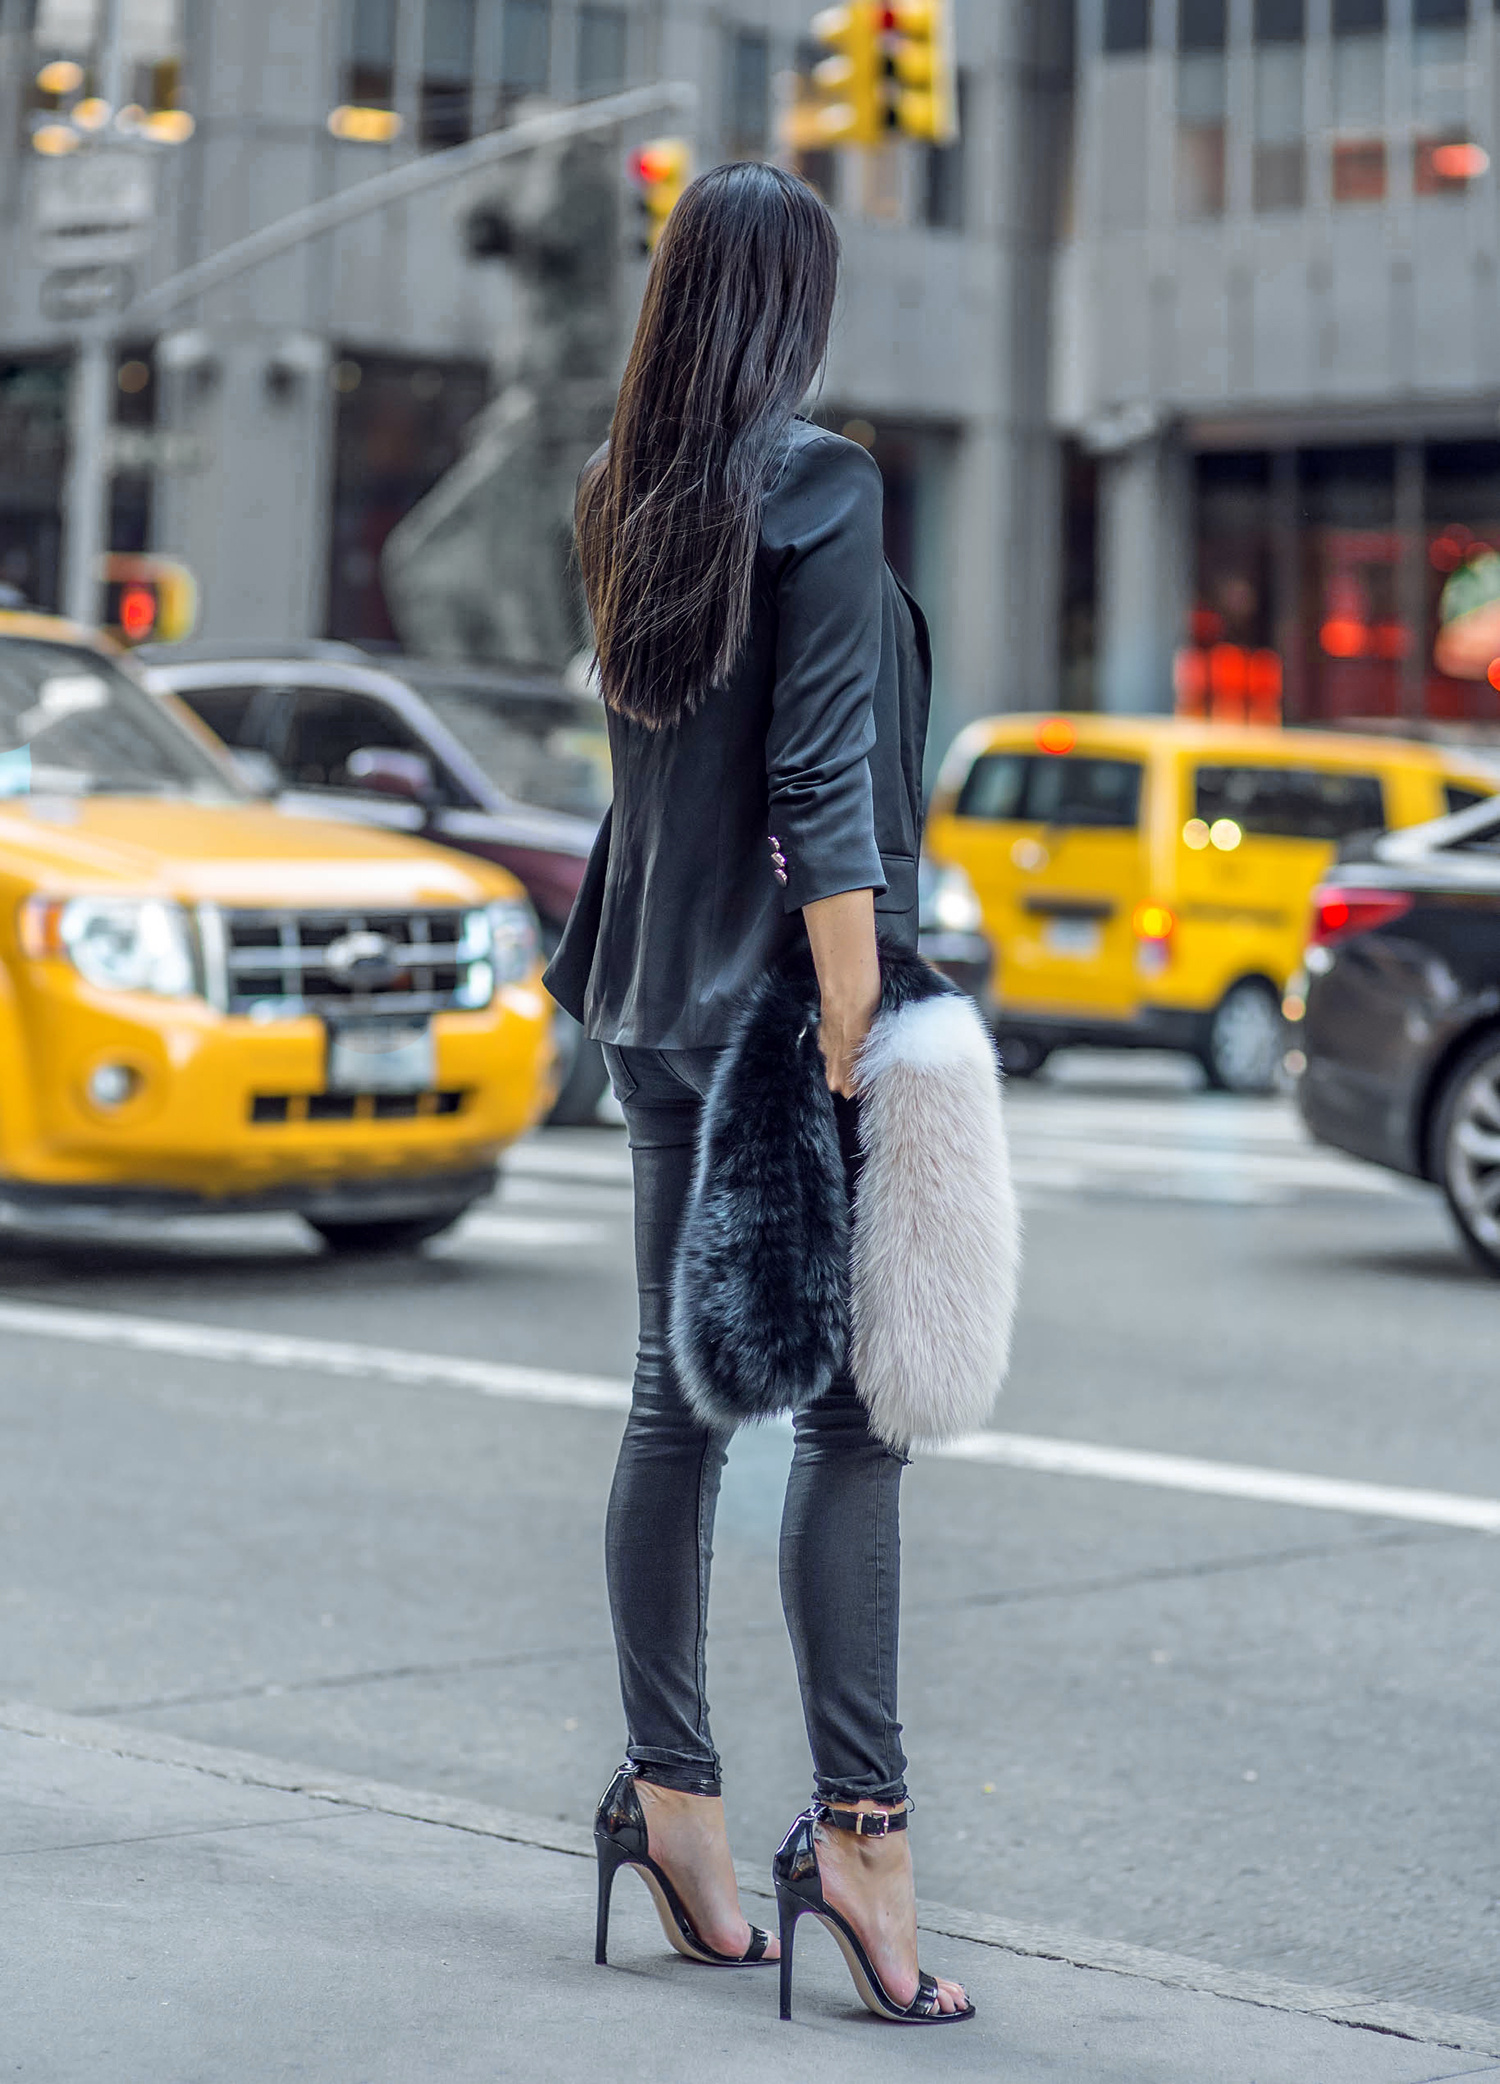 Johanna Olsson keeps it classy in a pair of shiny stilettos, a business style blazer and jeans. Accessorising the outfit with a fluffy scarf also adds to the overall edginess of the look. Brands Not Specified.